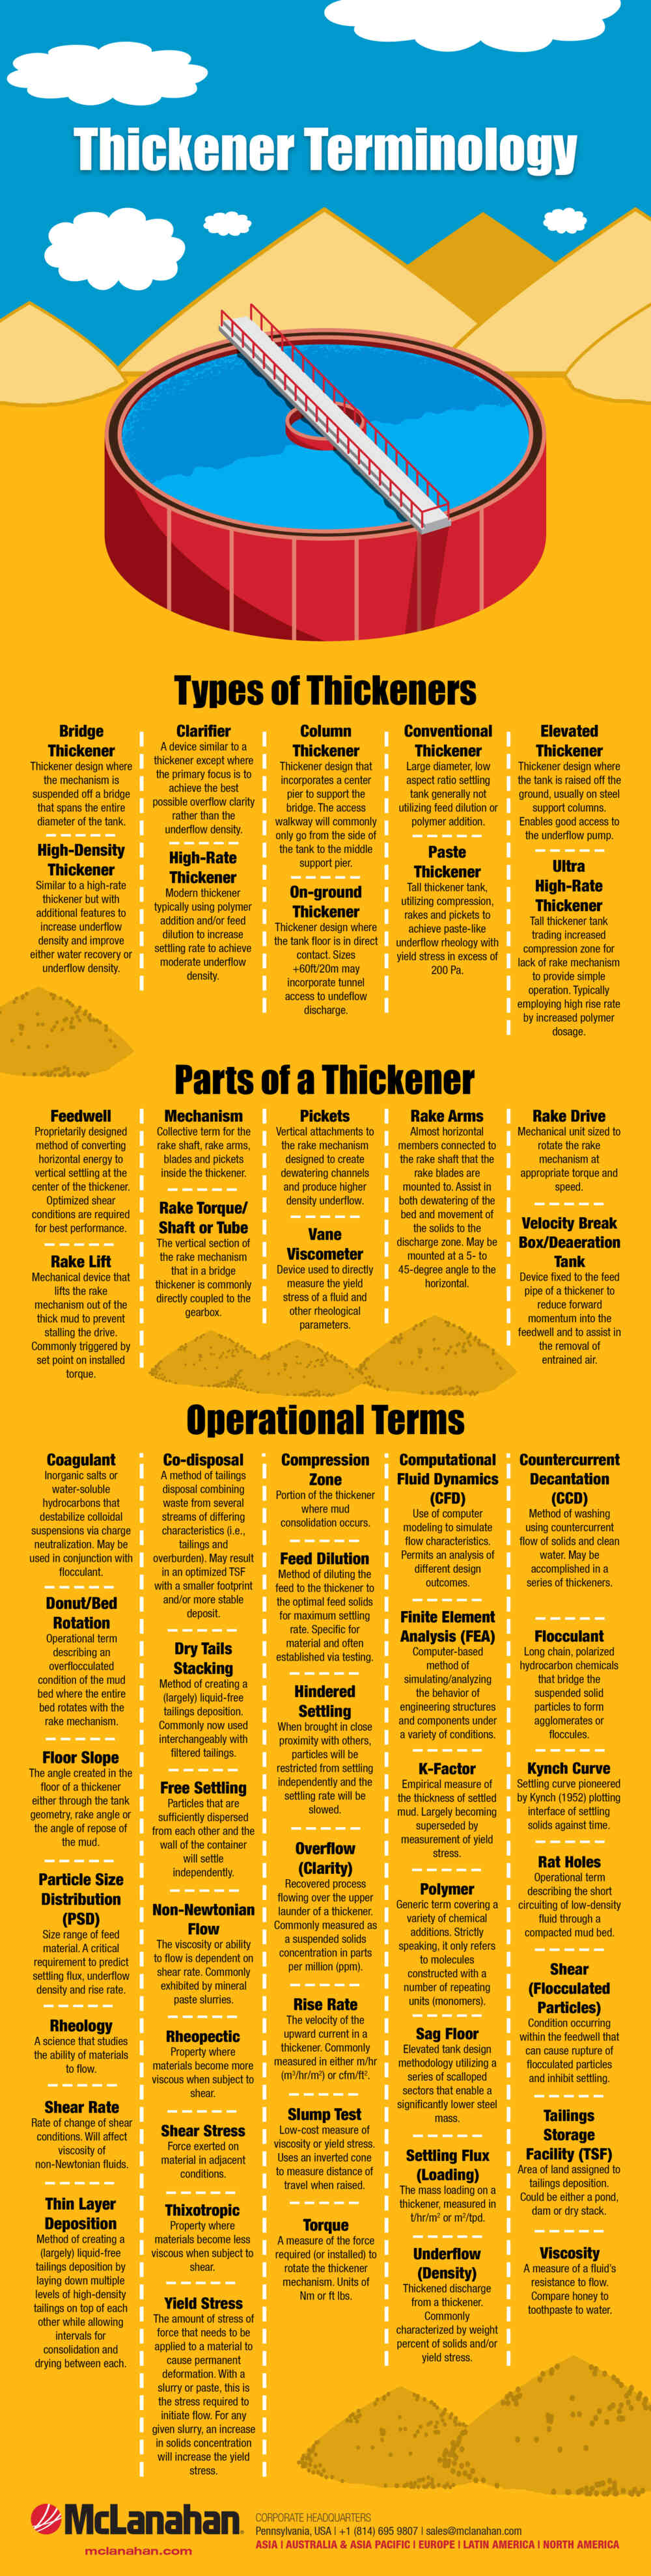 Thickener Terms Final